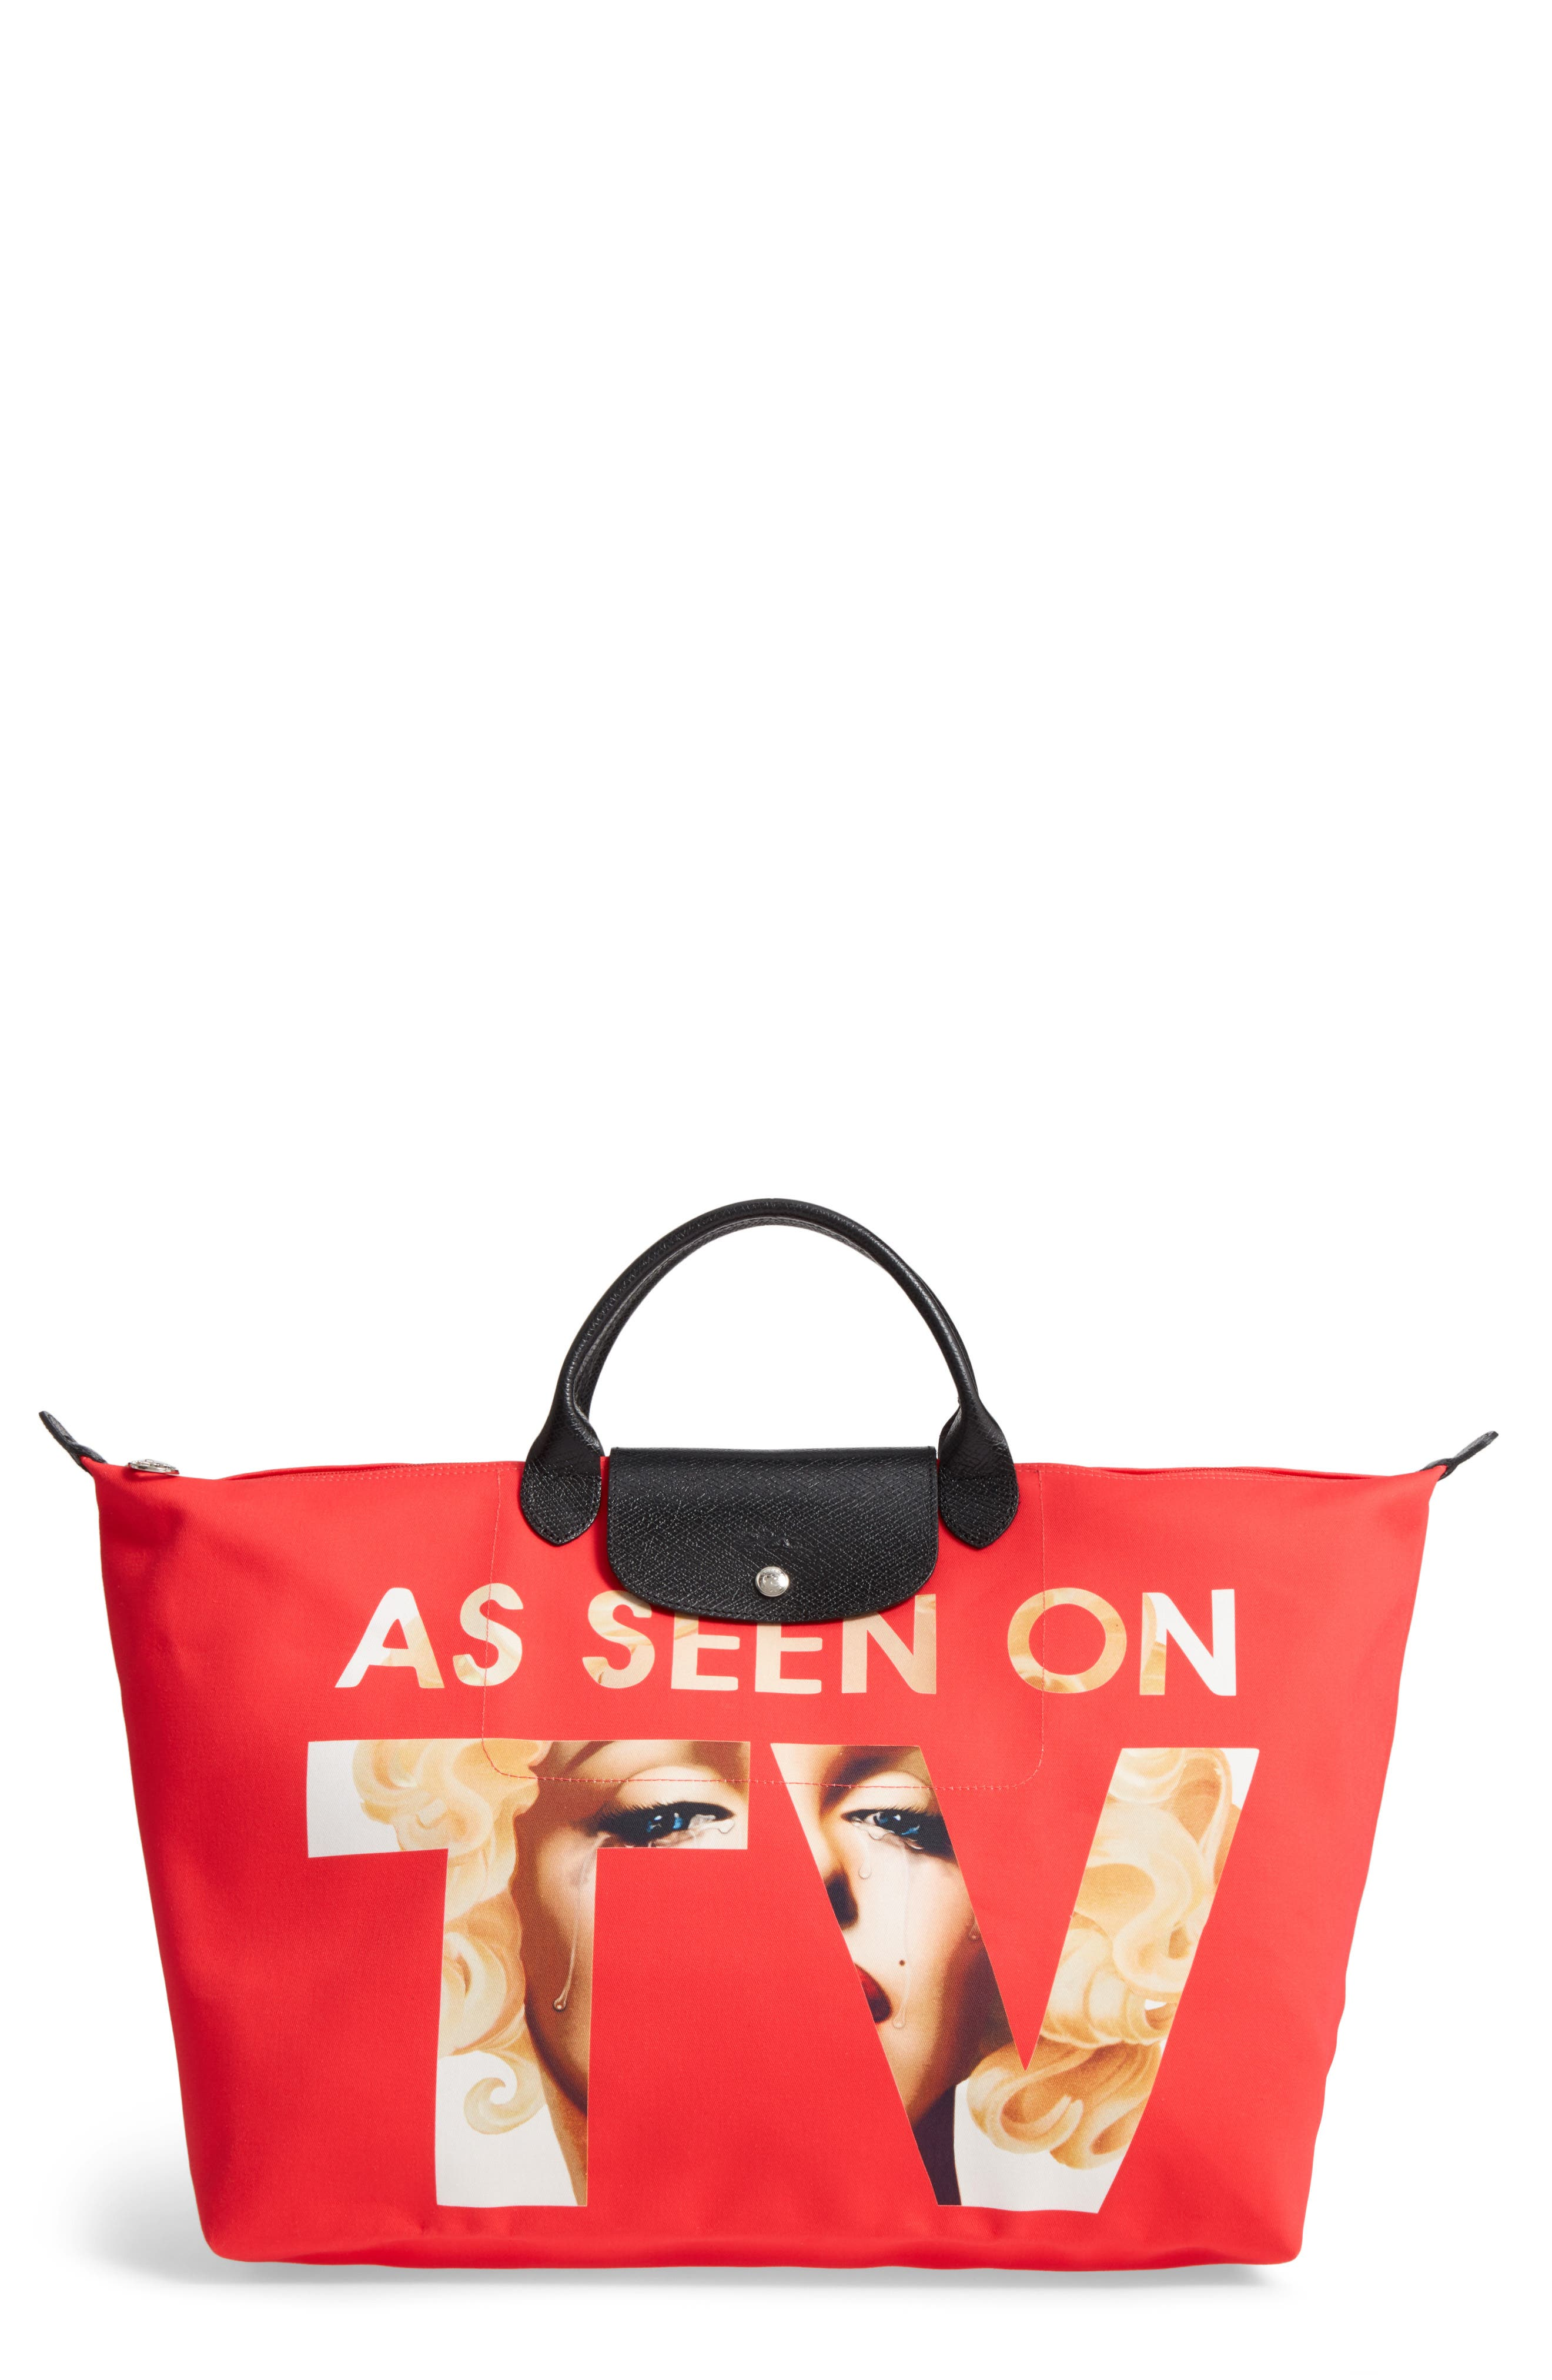 x Jeremy Scott As Seen on TV Tote,                         Main,                         color,